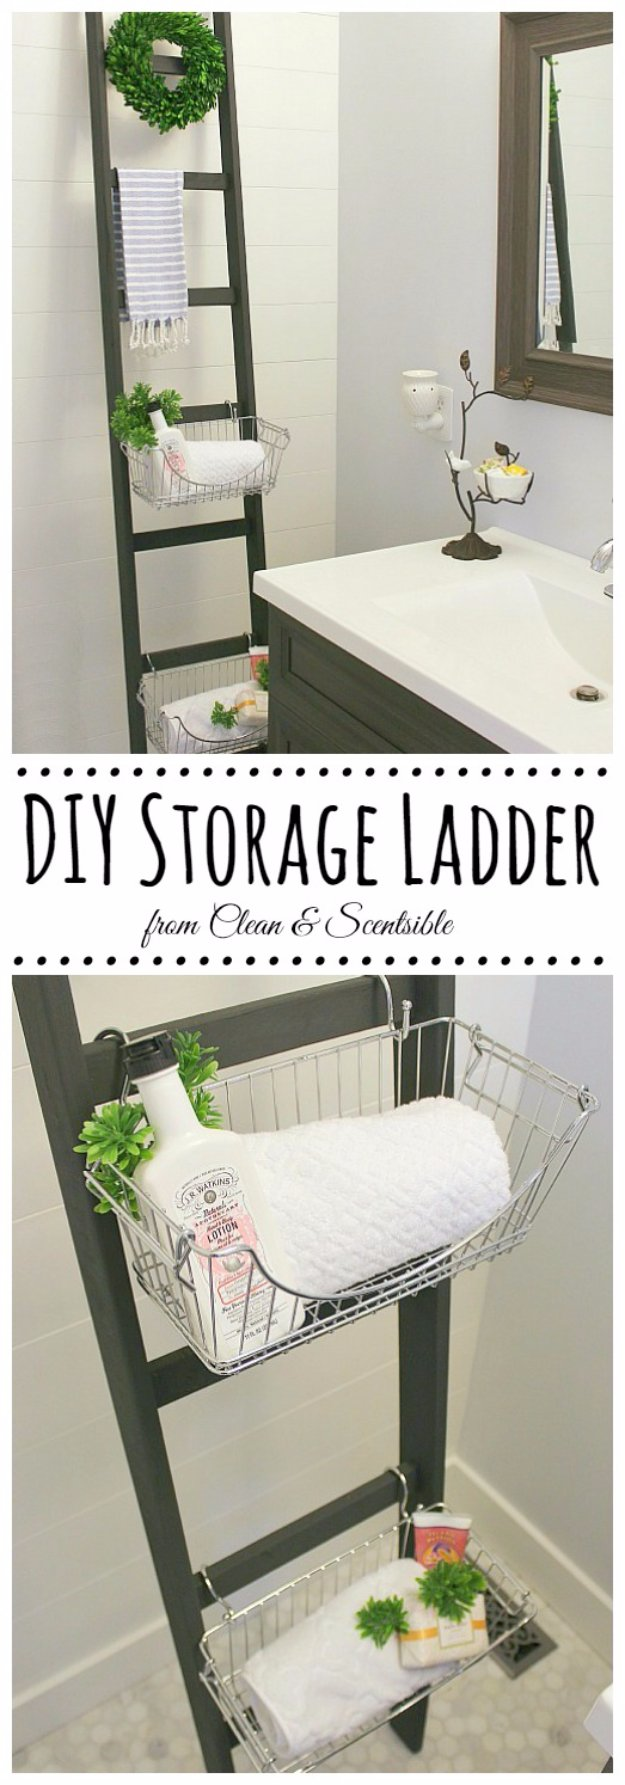 DIY Bathroom Decor Ideas - DIY Bathroom Storage Ladder - Cool Do It Yourself Bath Ideas on A Budget, Rustic Bathroom Fixtures, Creative Wall Art, Rugs mason jar idea bath diy